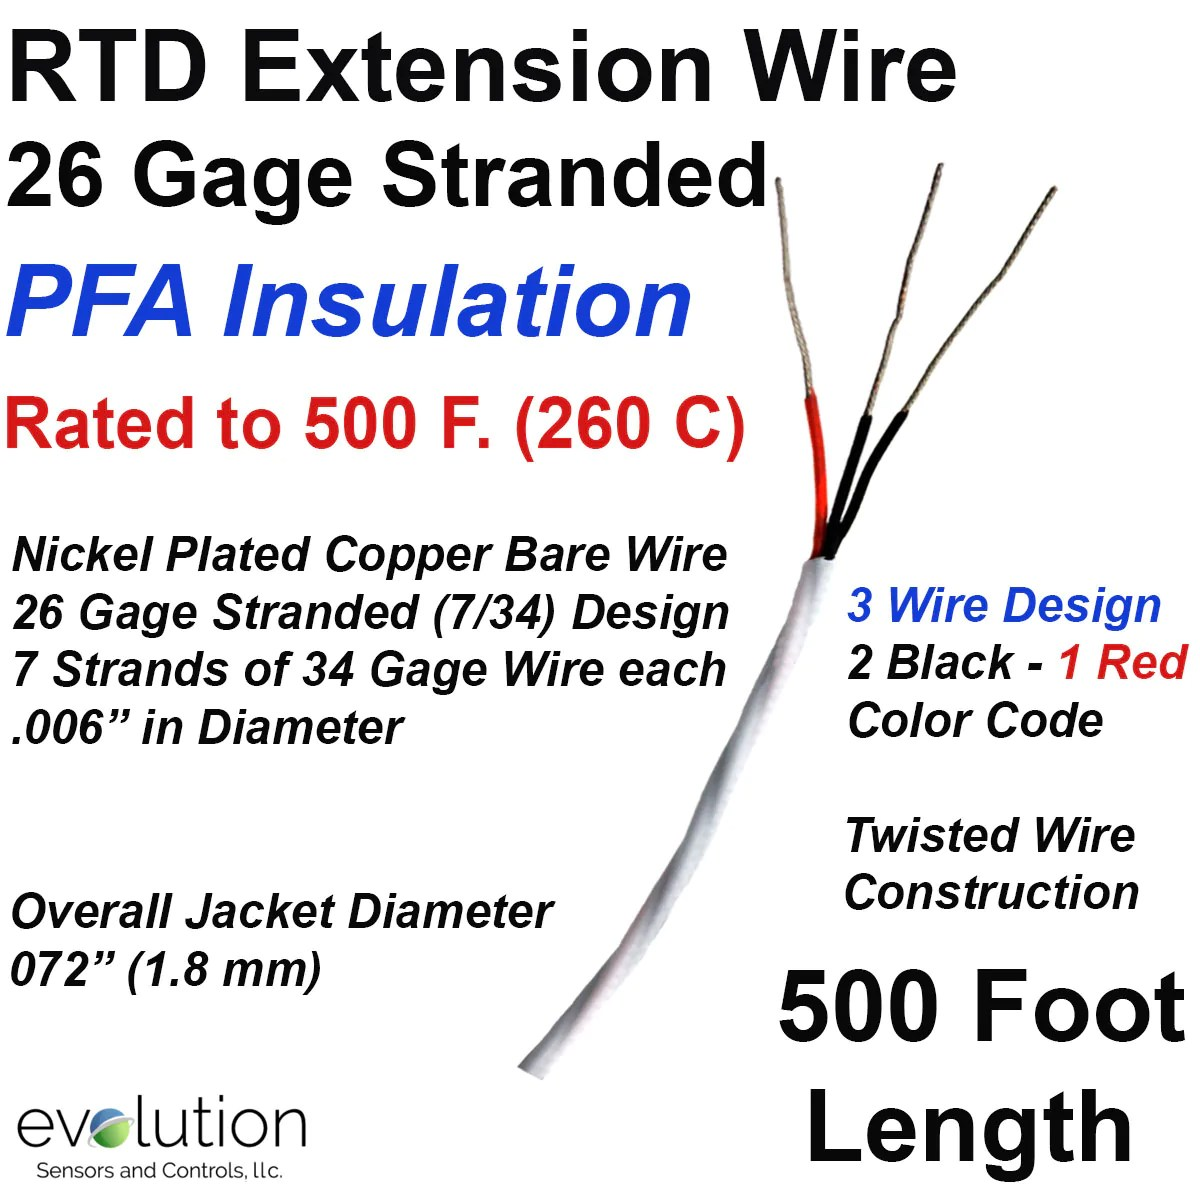 medium resolution of rtd extension wire 500 foot length 26 gage stranded 3 wire design type j thermocouple wire color rtd wiring color code